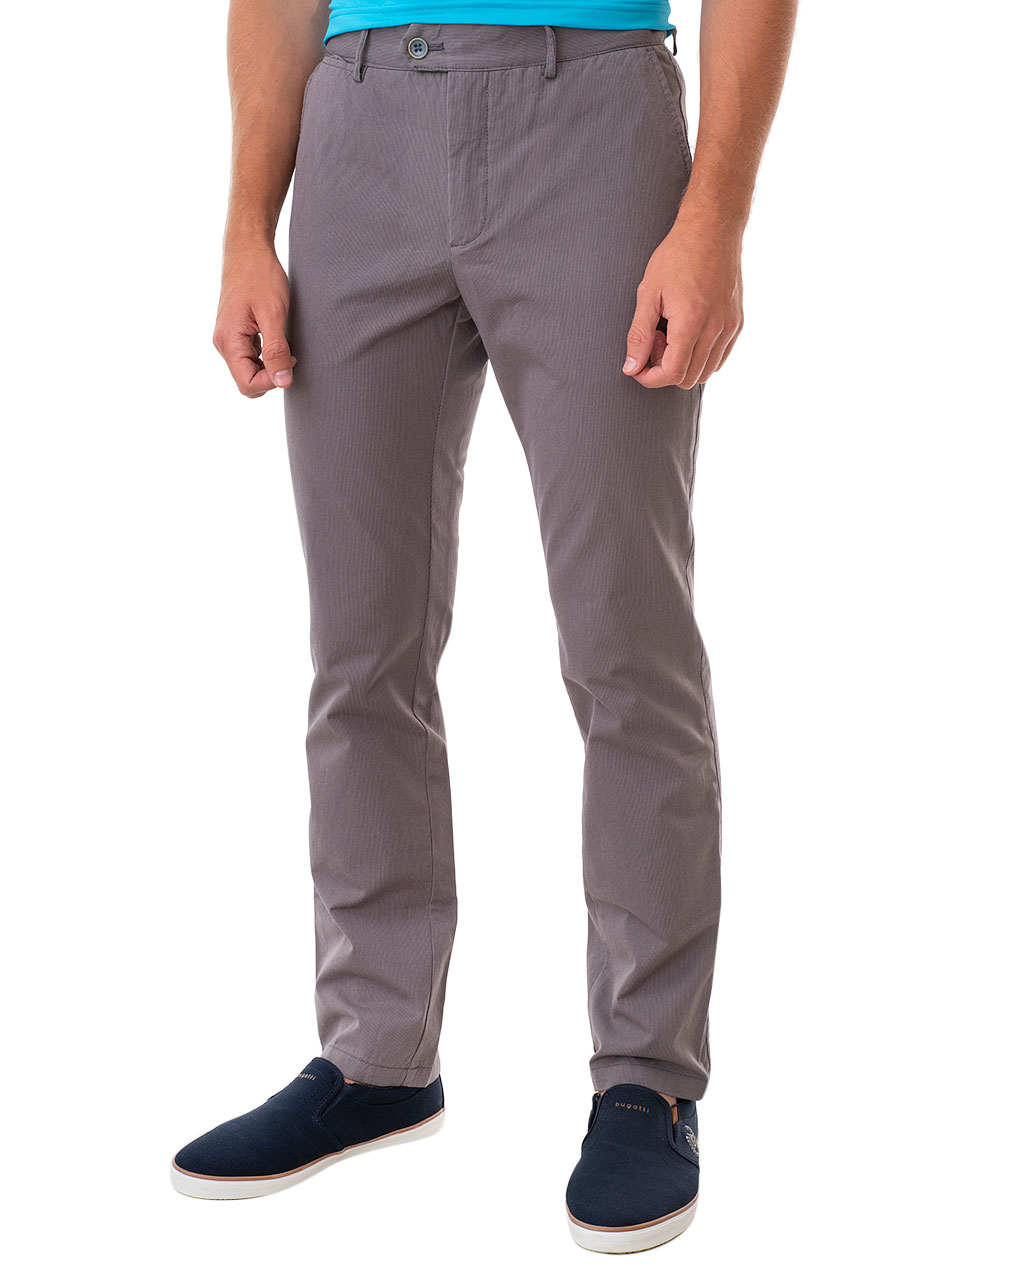 Men's trousers 140501130                (1)